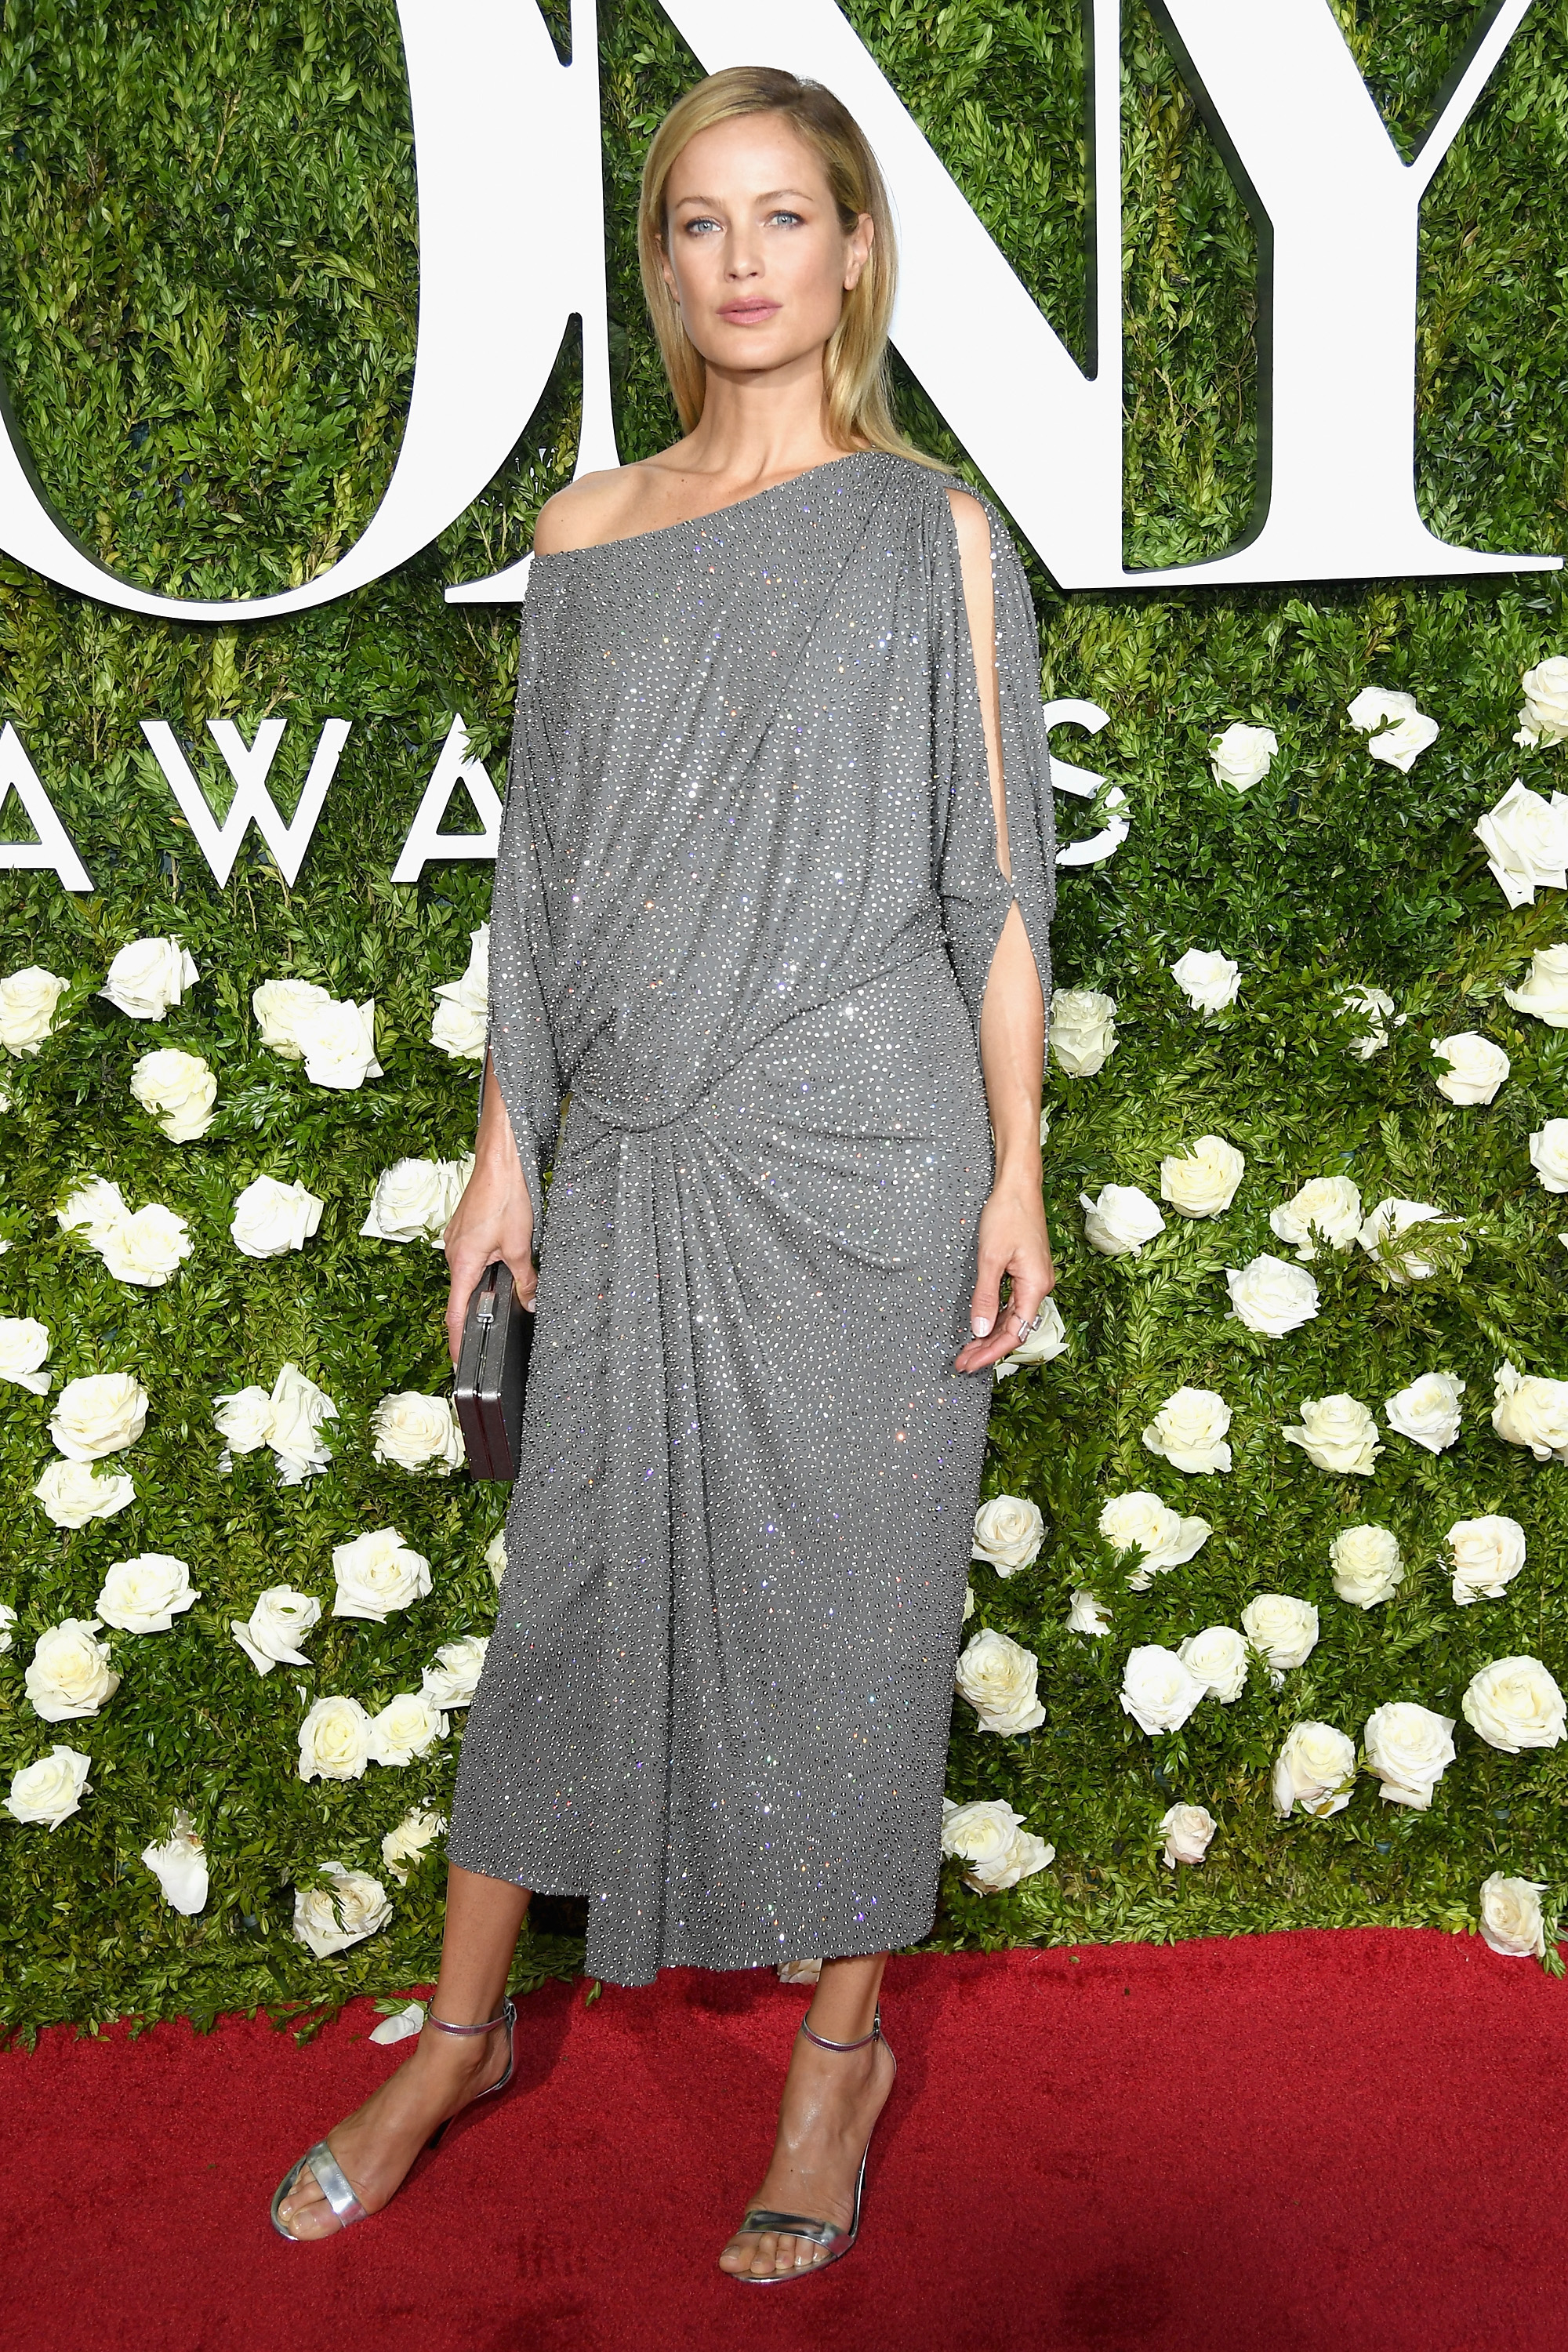 NEW YORK, NY - JUNE 11:  Model Carolyn Murphy attends the 2017 Tony Awards at Radio City Music Hall on June 11, 2017 in New York City.  (Photo by Dimitrios Kambouris/Getty Images for Tony Awards Productions)